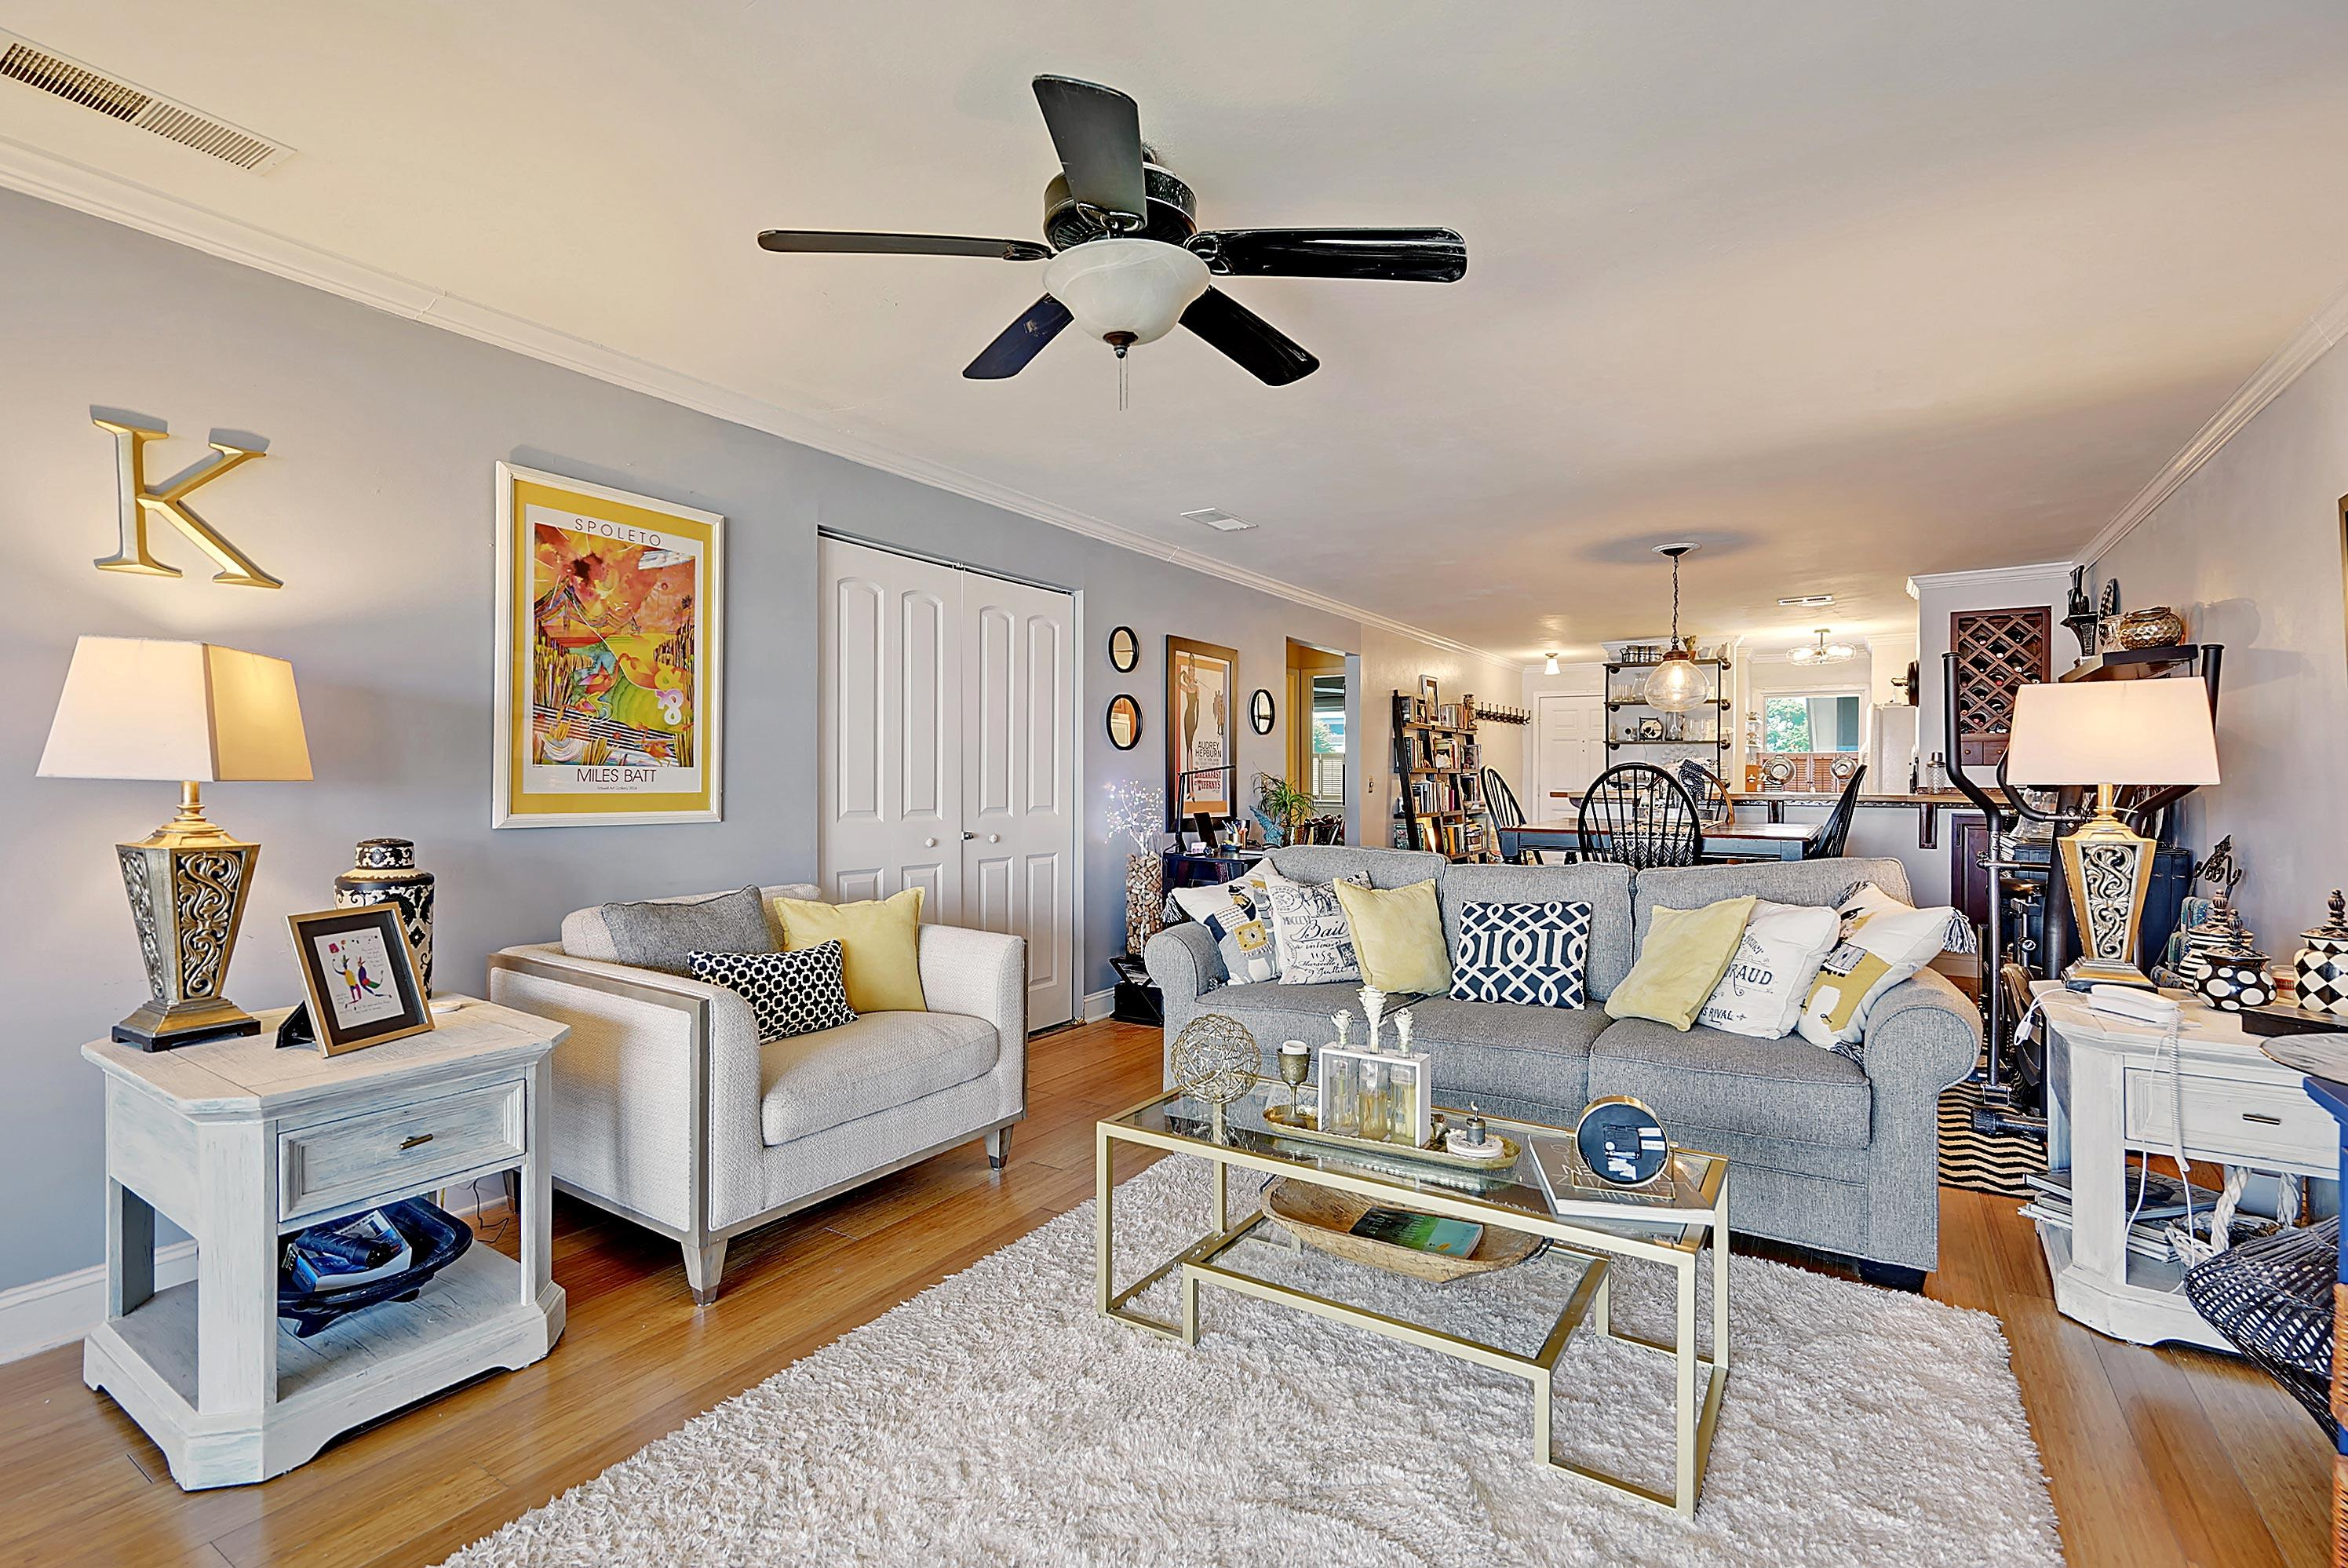 Mariners Cay Homes For Sale - 63 Mariners Cay, Folly Beach, SC - 0